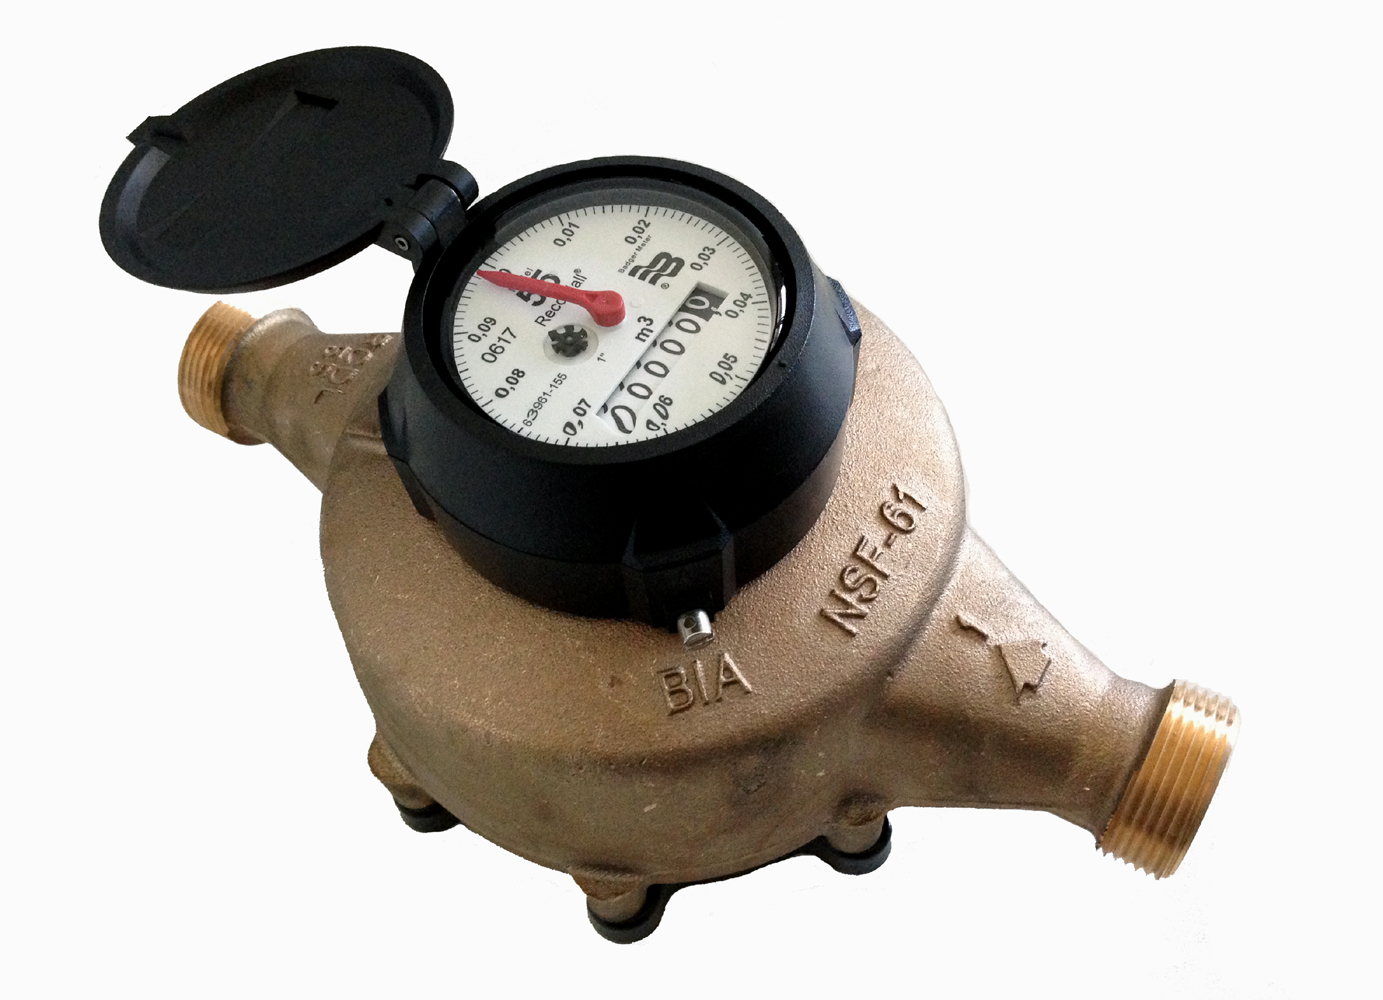 Badger Meter - Models : M-25 / M-35 / M-55 / M-120 / M-170